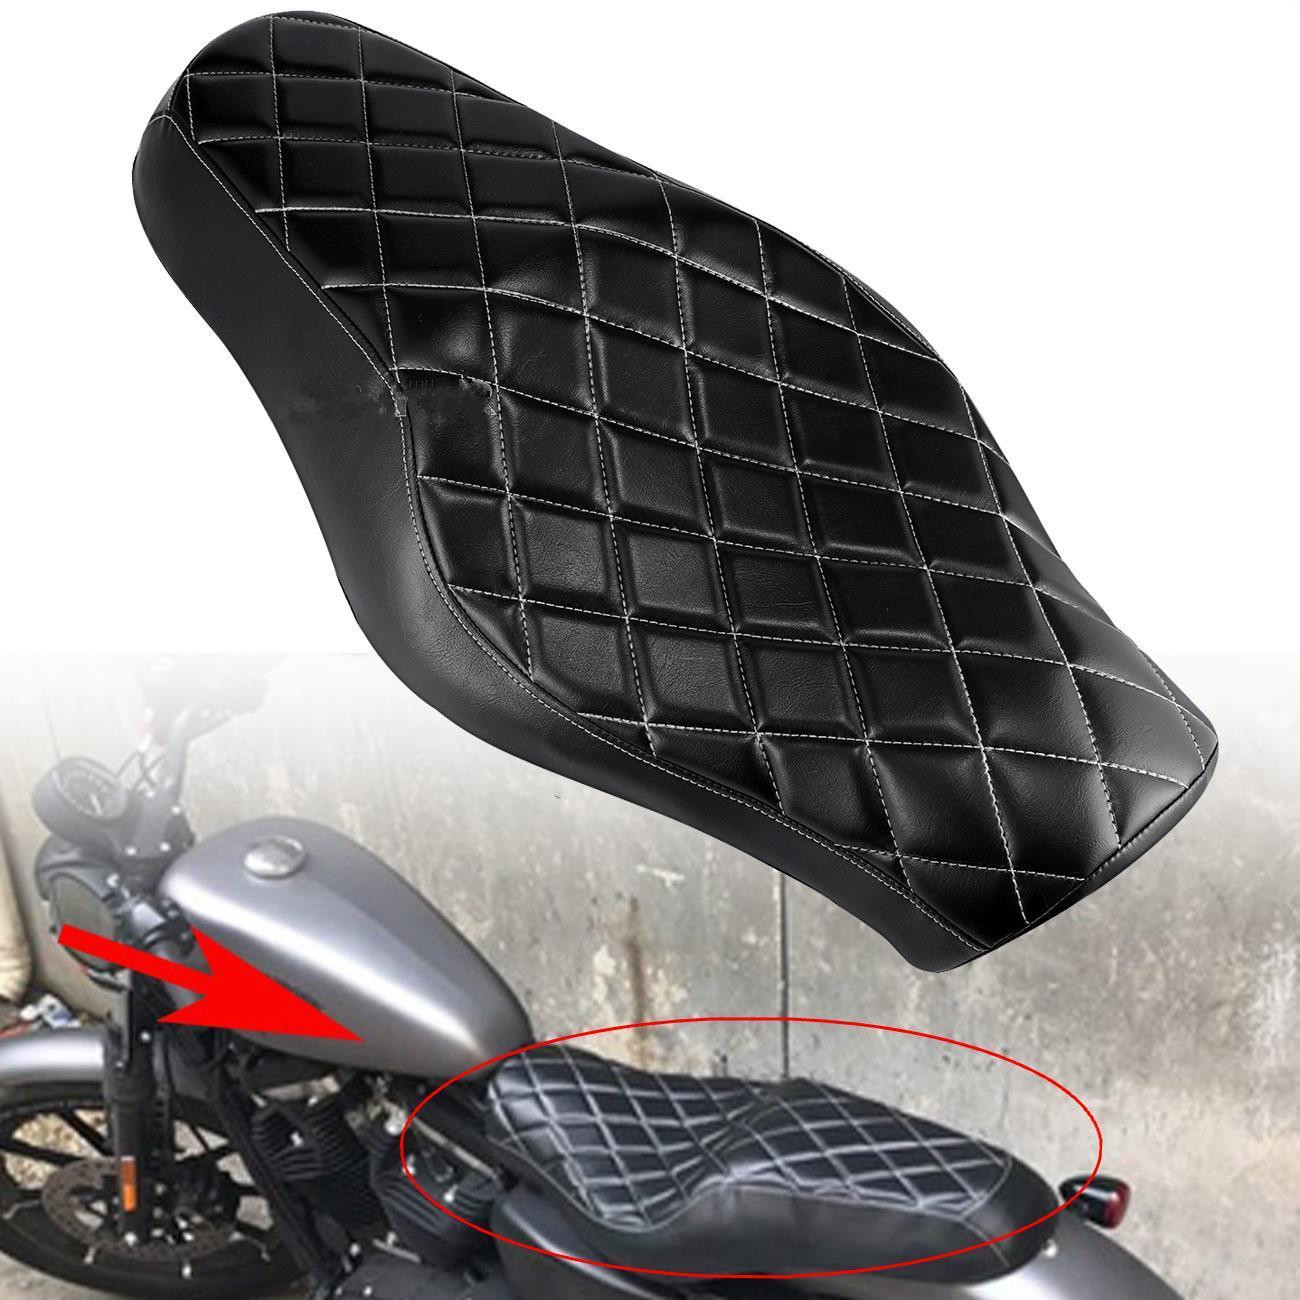 Two-Up Rider+Passenger Seat Cushion Pillion For Harley SuperLow 1200T 2014-2016